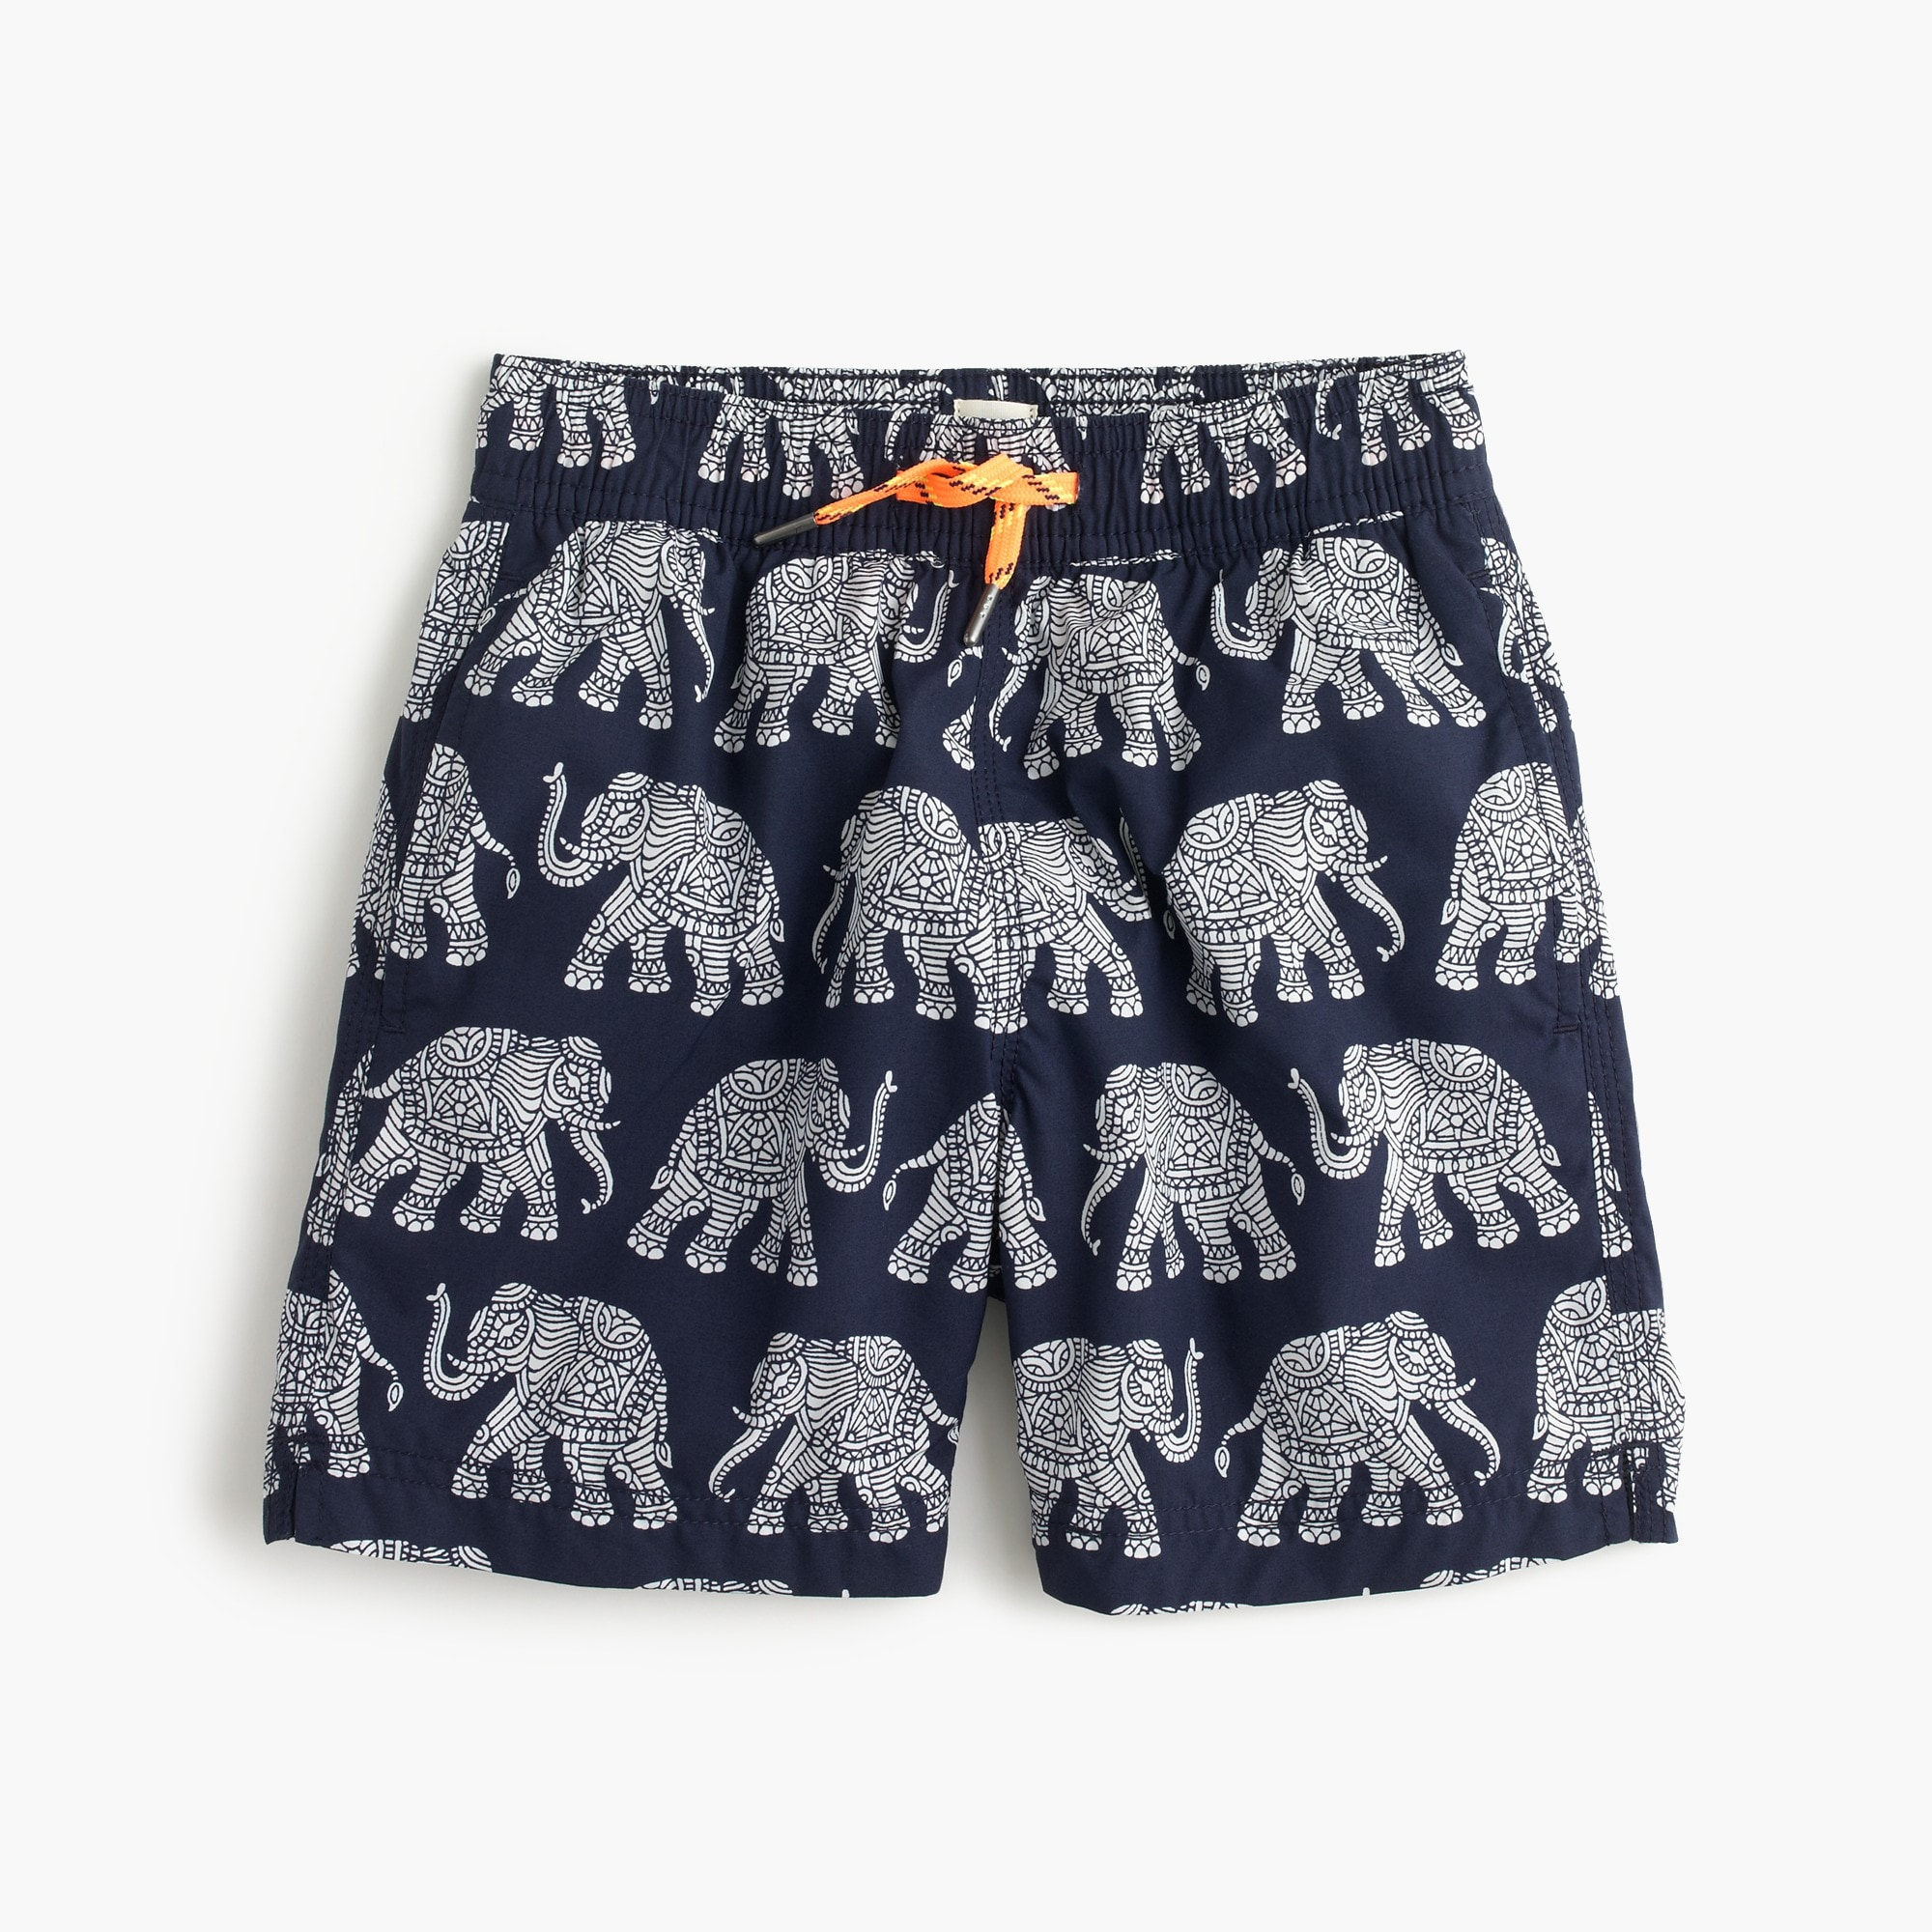 boys' swim trunk in elephant print : boys' swimwear